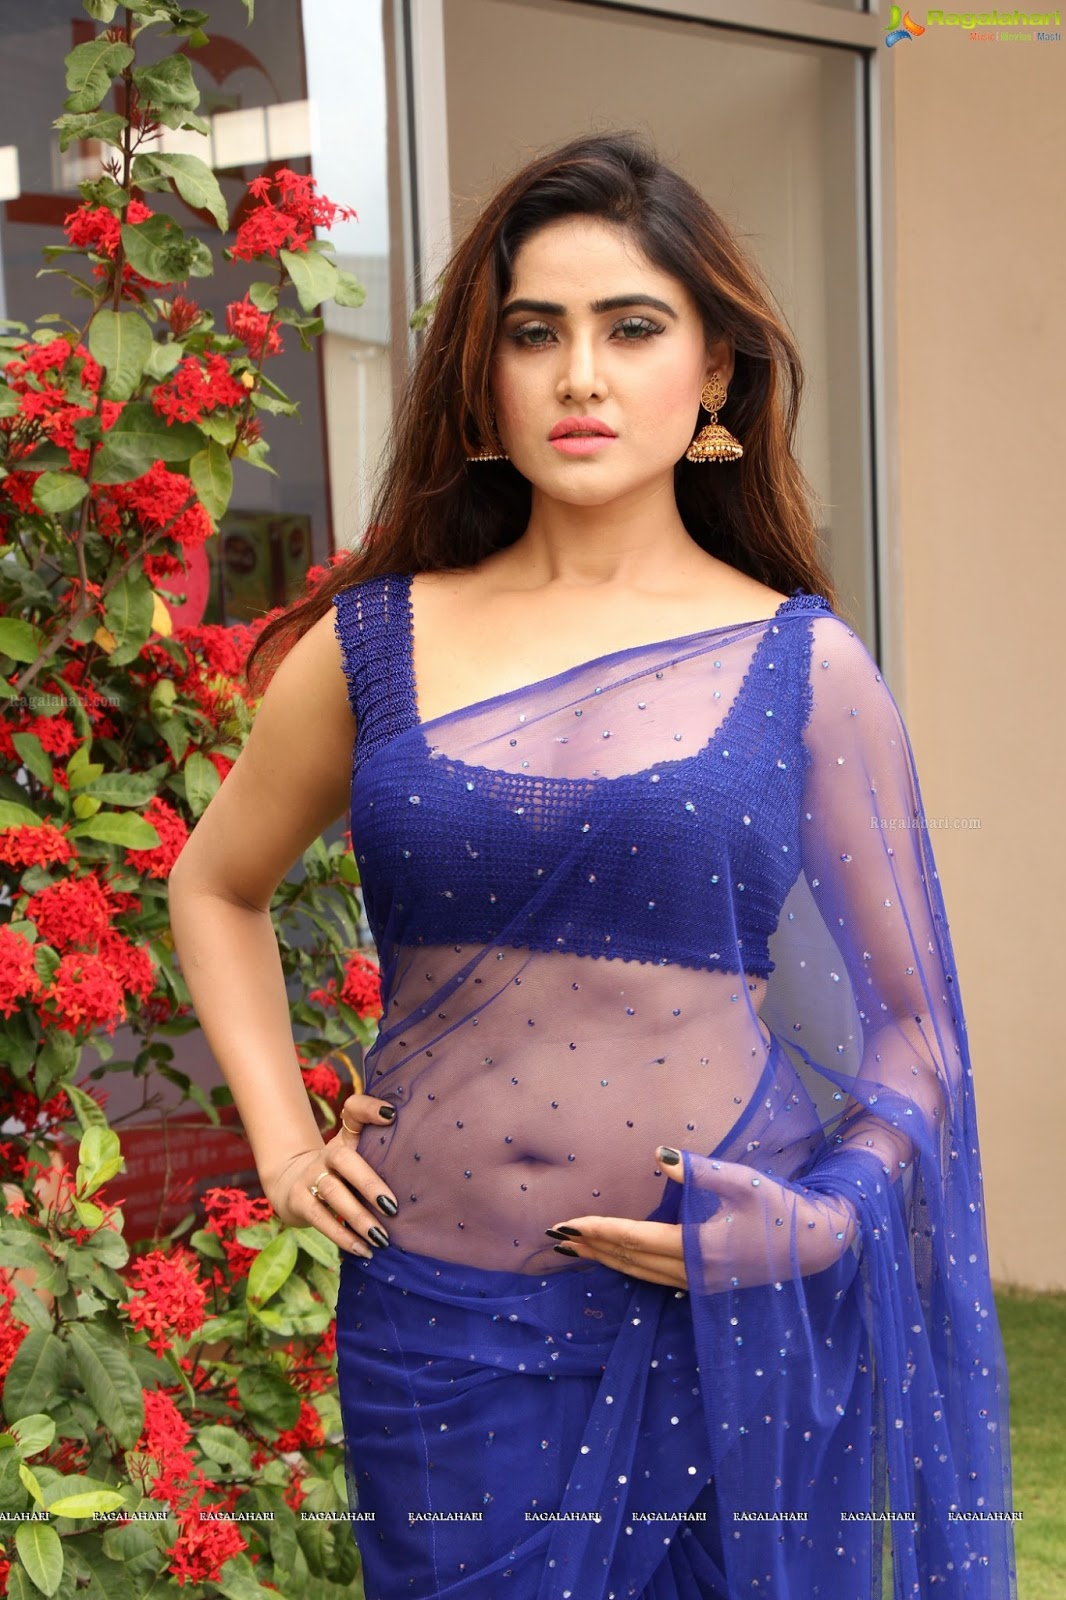 Telugu Actress Hot Navel In Transparent Saree Pictures -6285